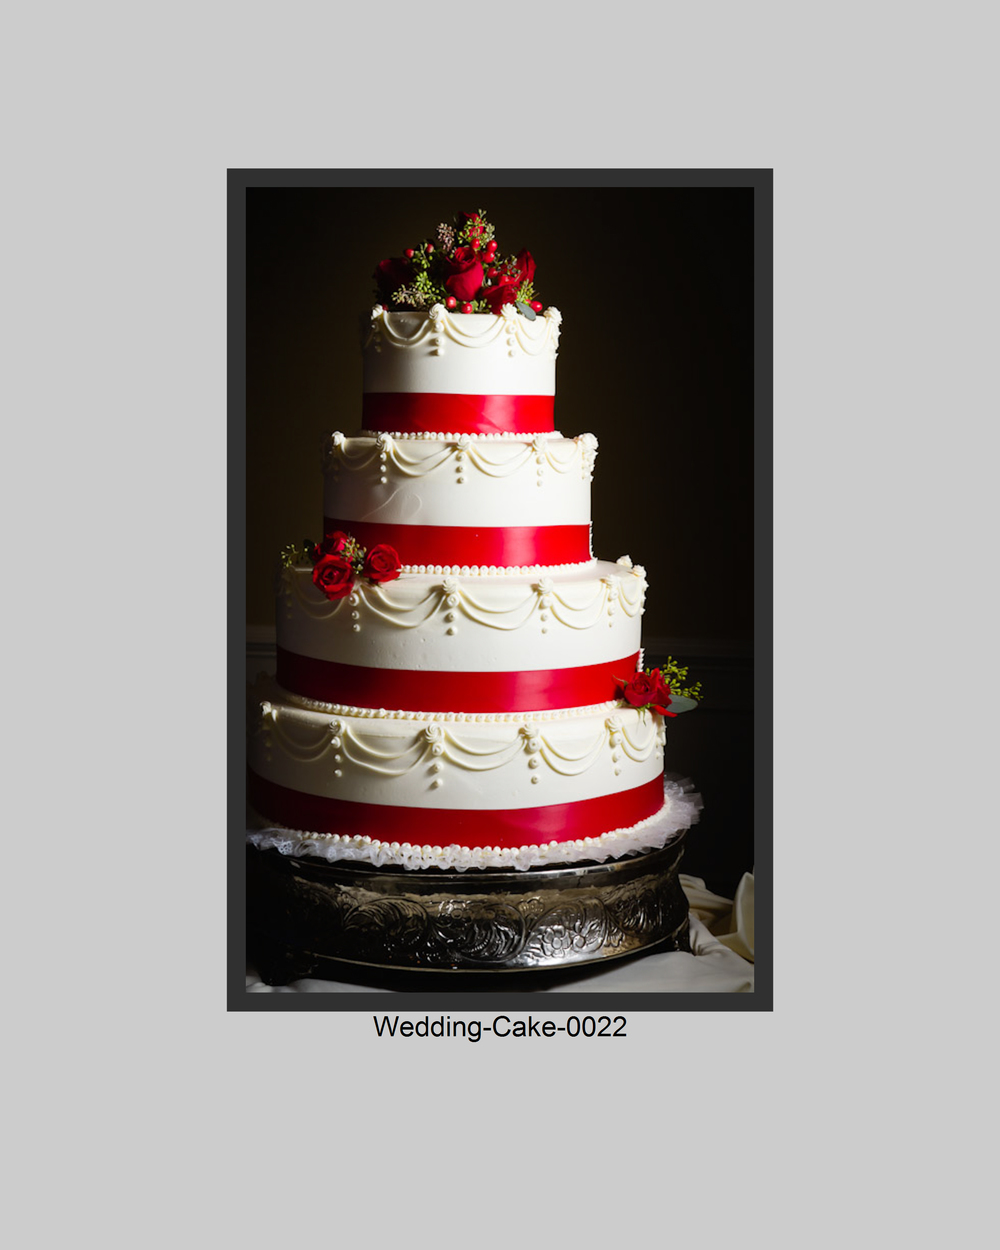 Wedding Cake Prints-022.jpg